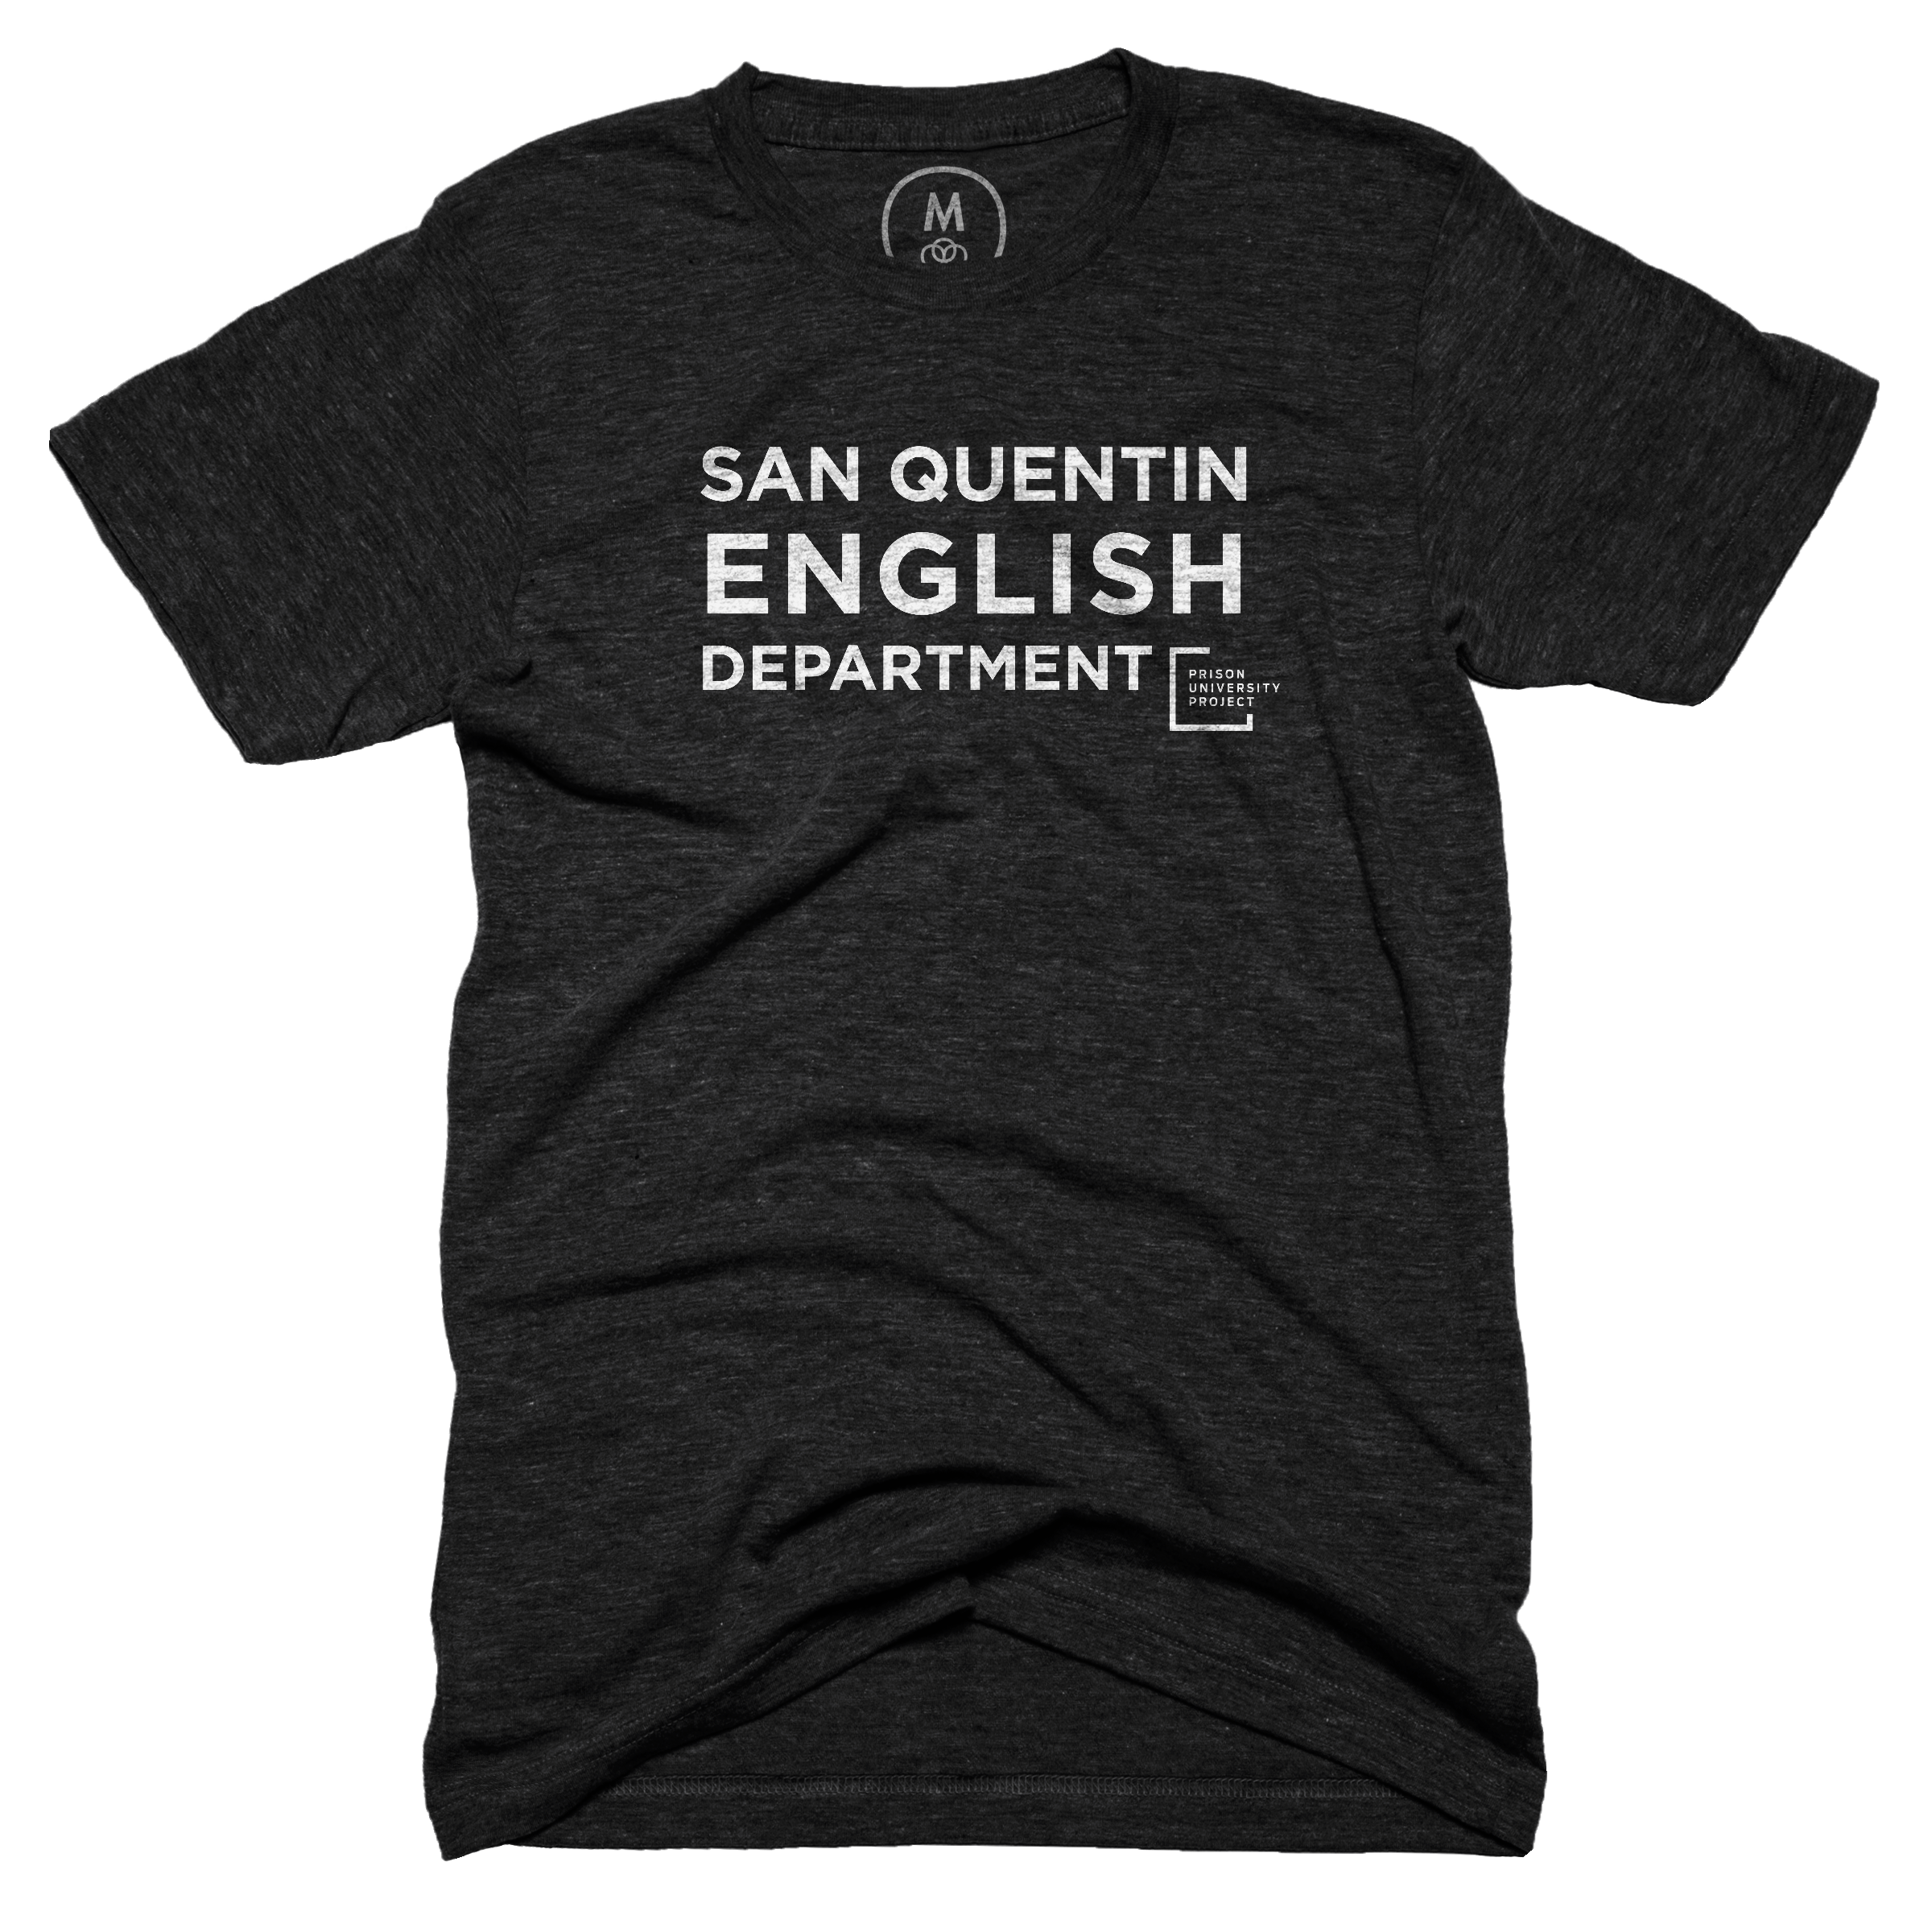 San Quentin English Department